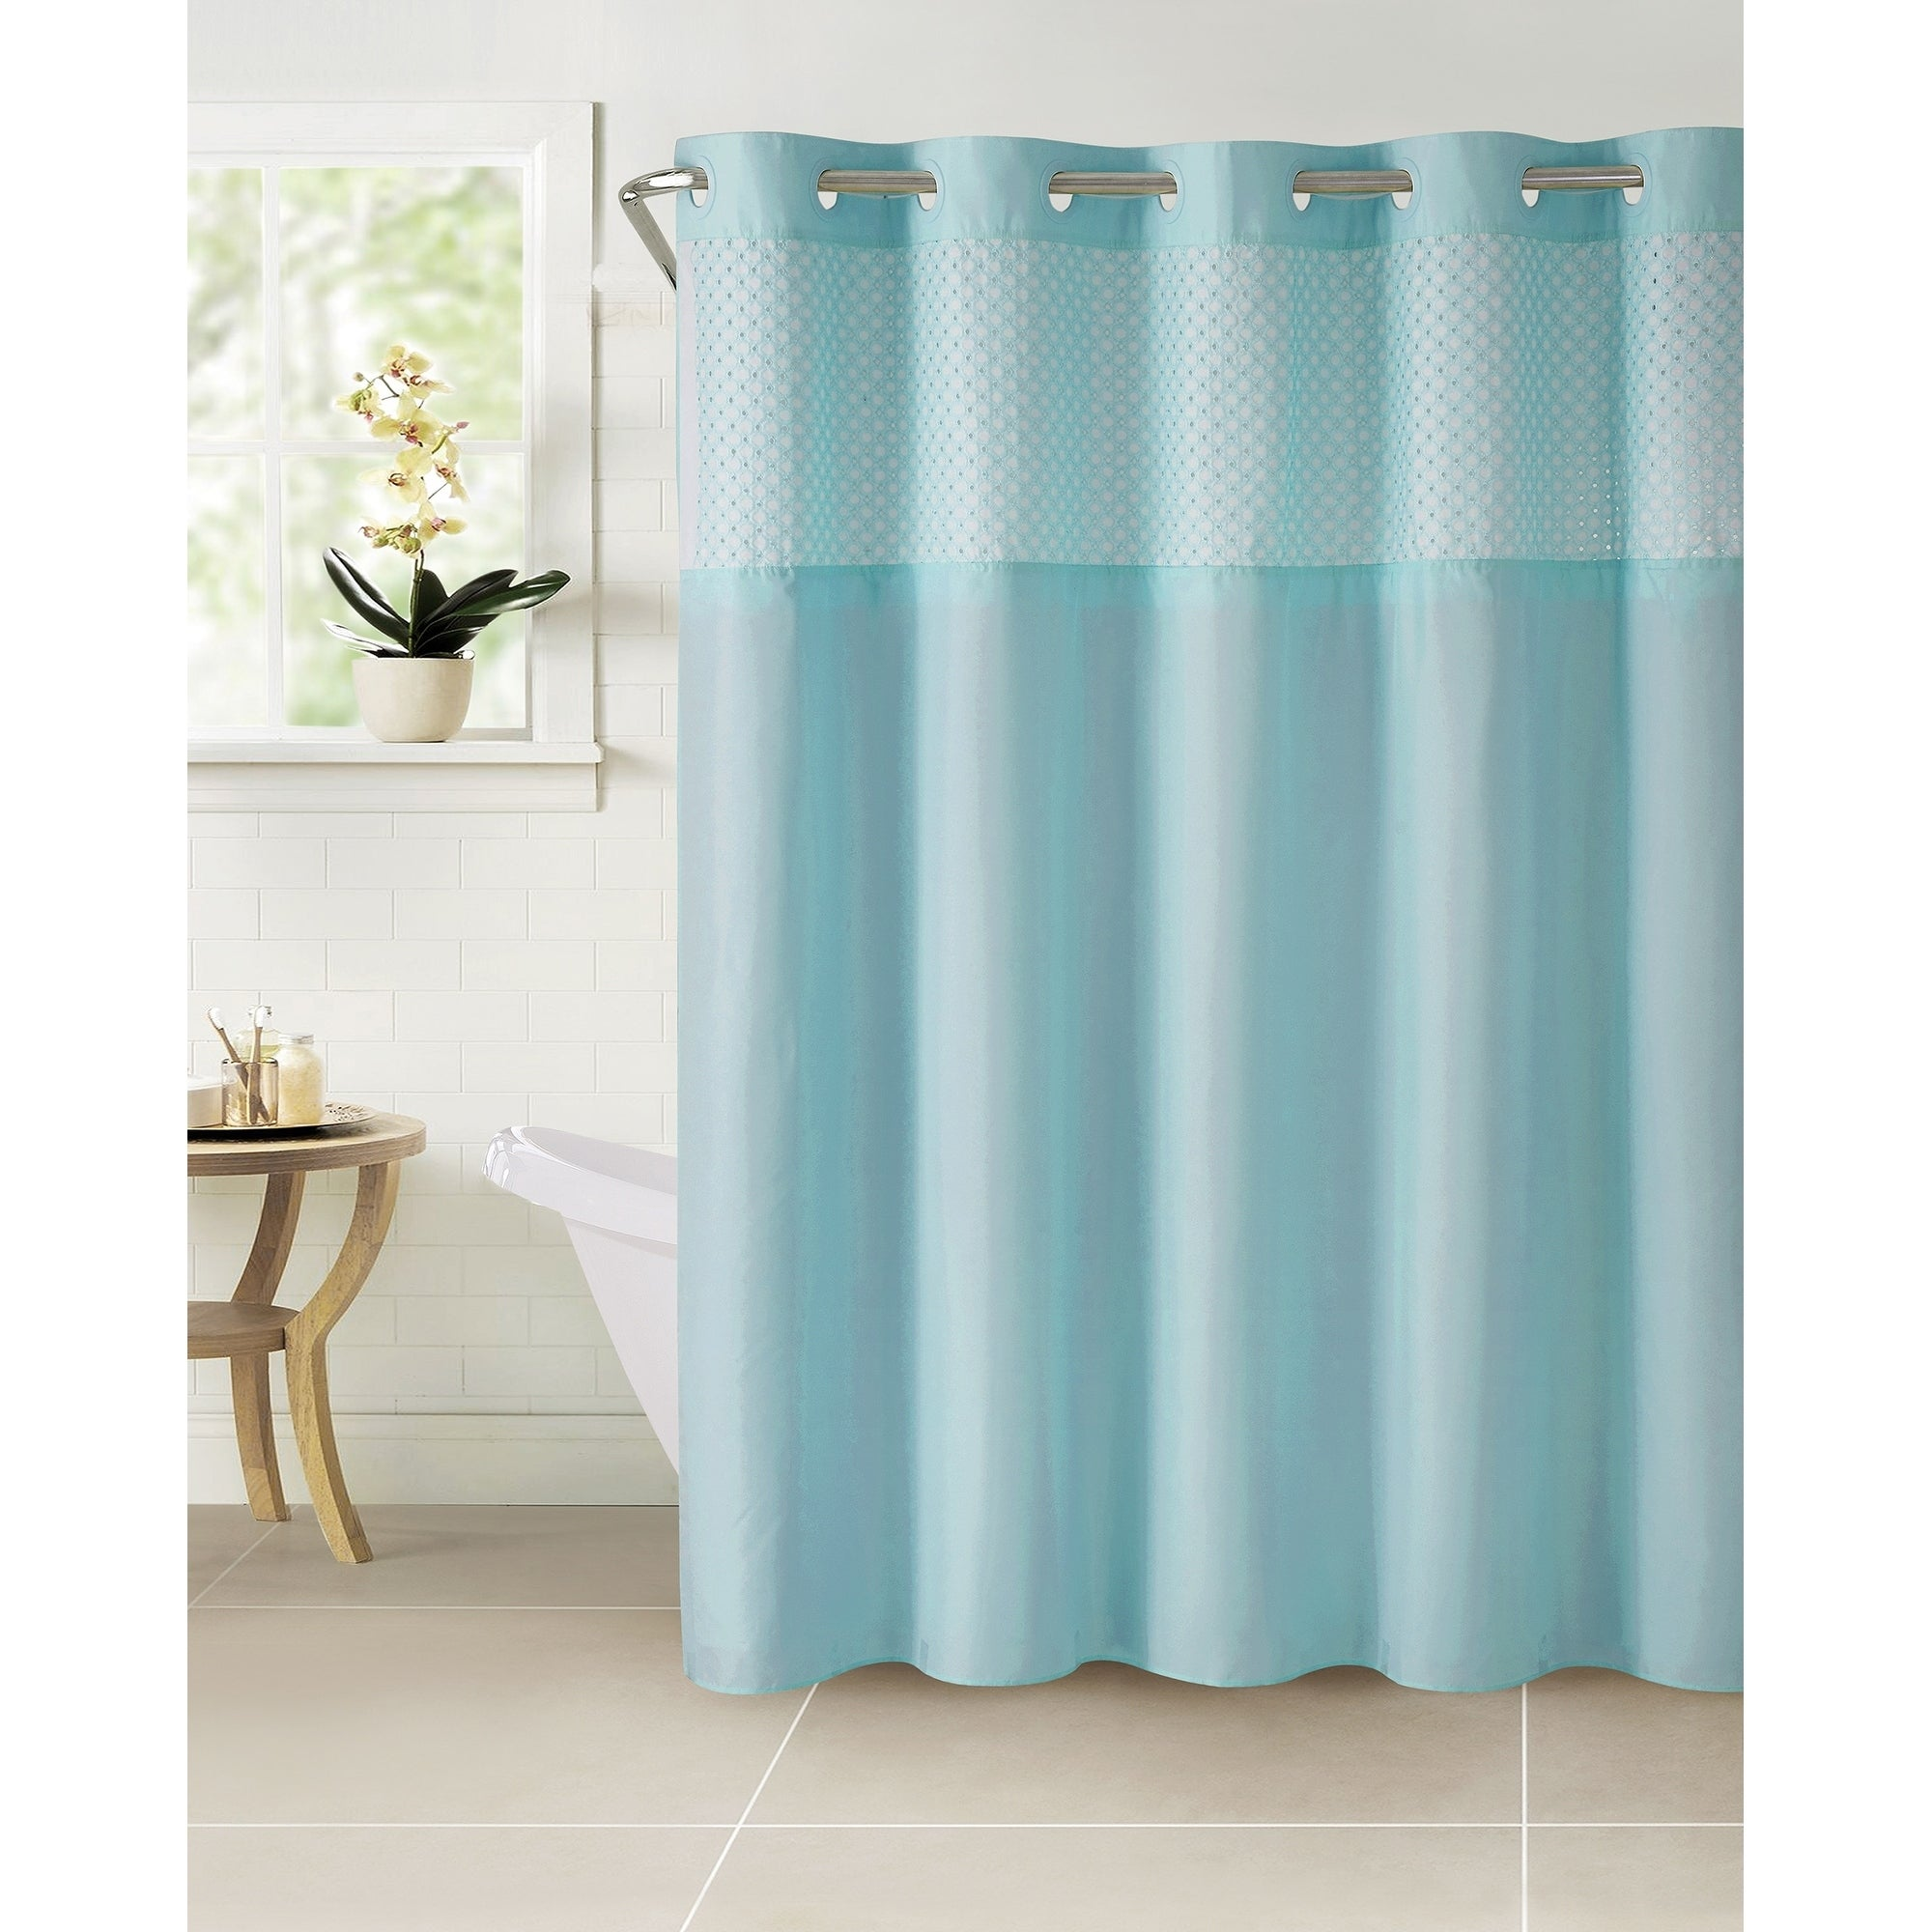 Shop HooklessR Shower Curtain Bahama Eyelet Crystal